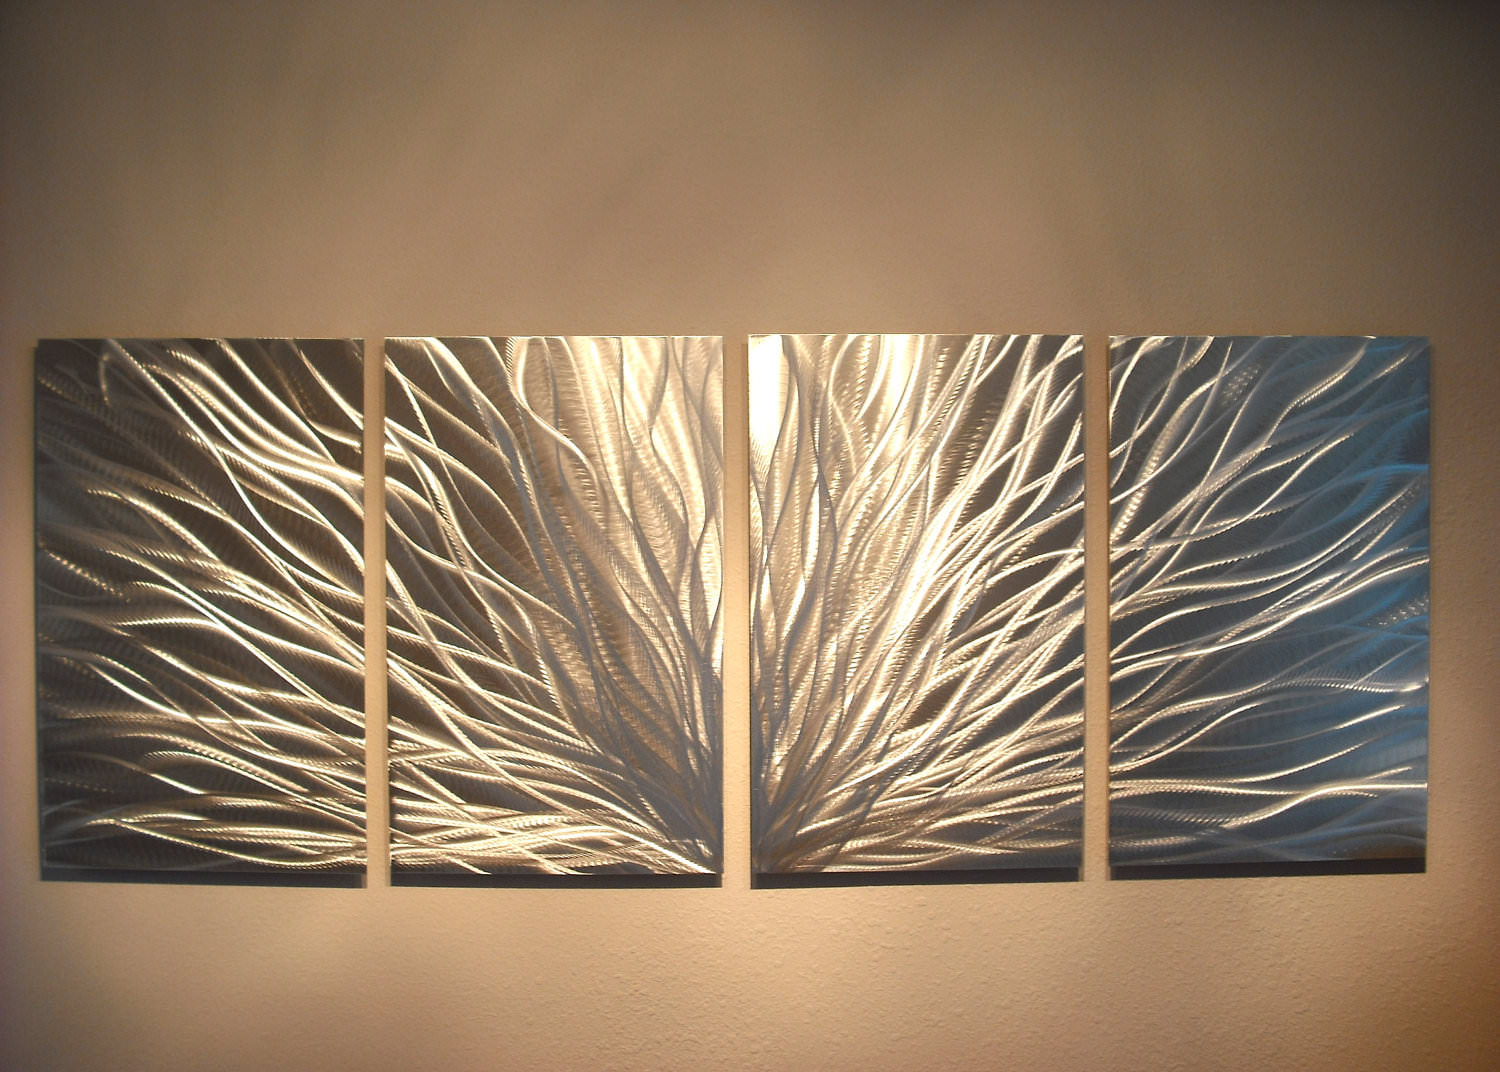 Charmant Handmade Metal Wall Design